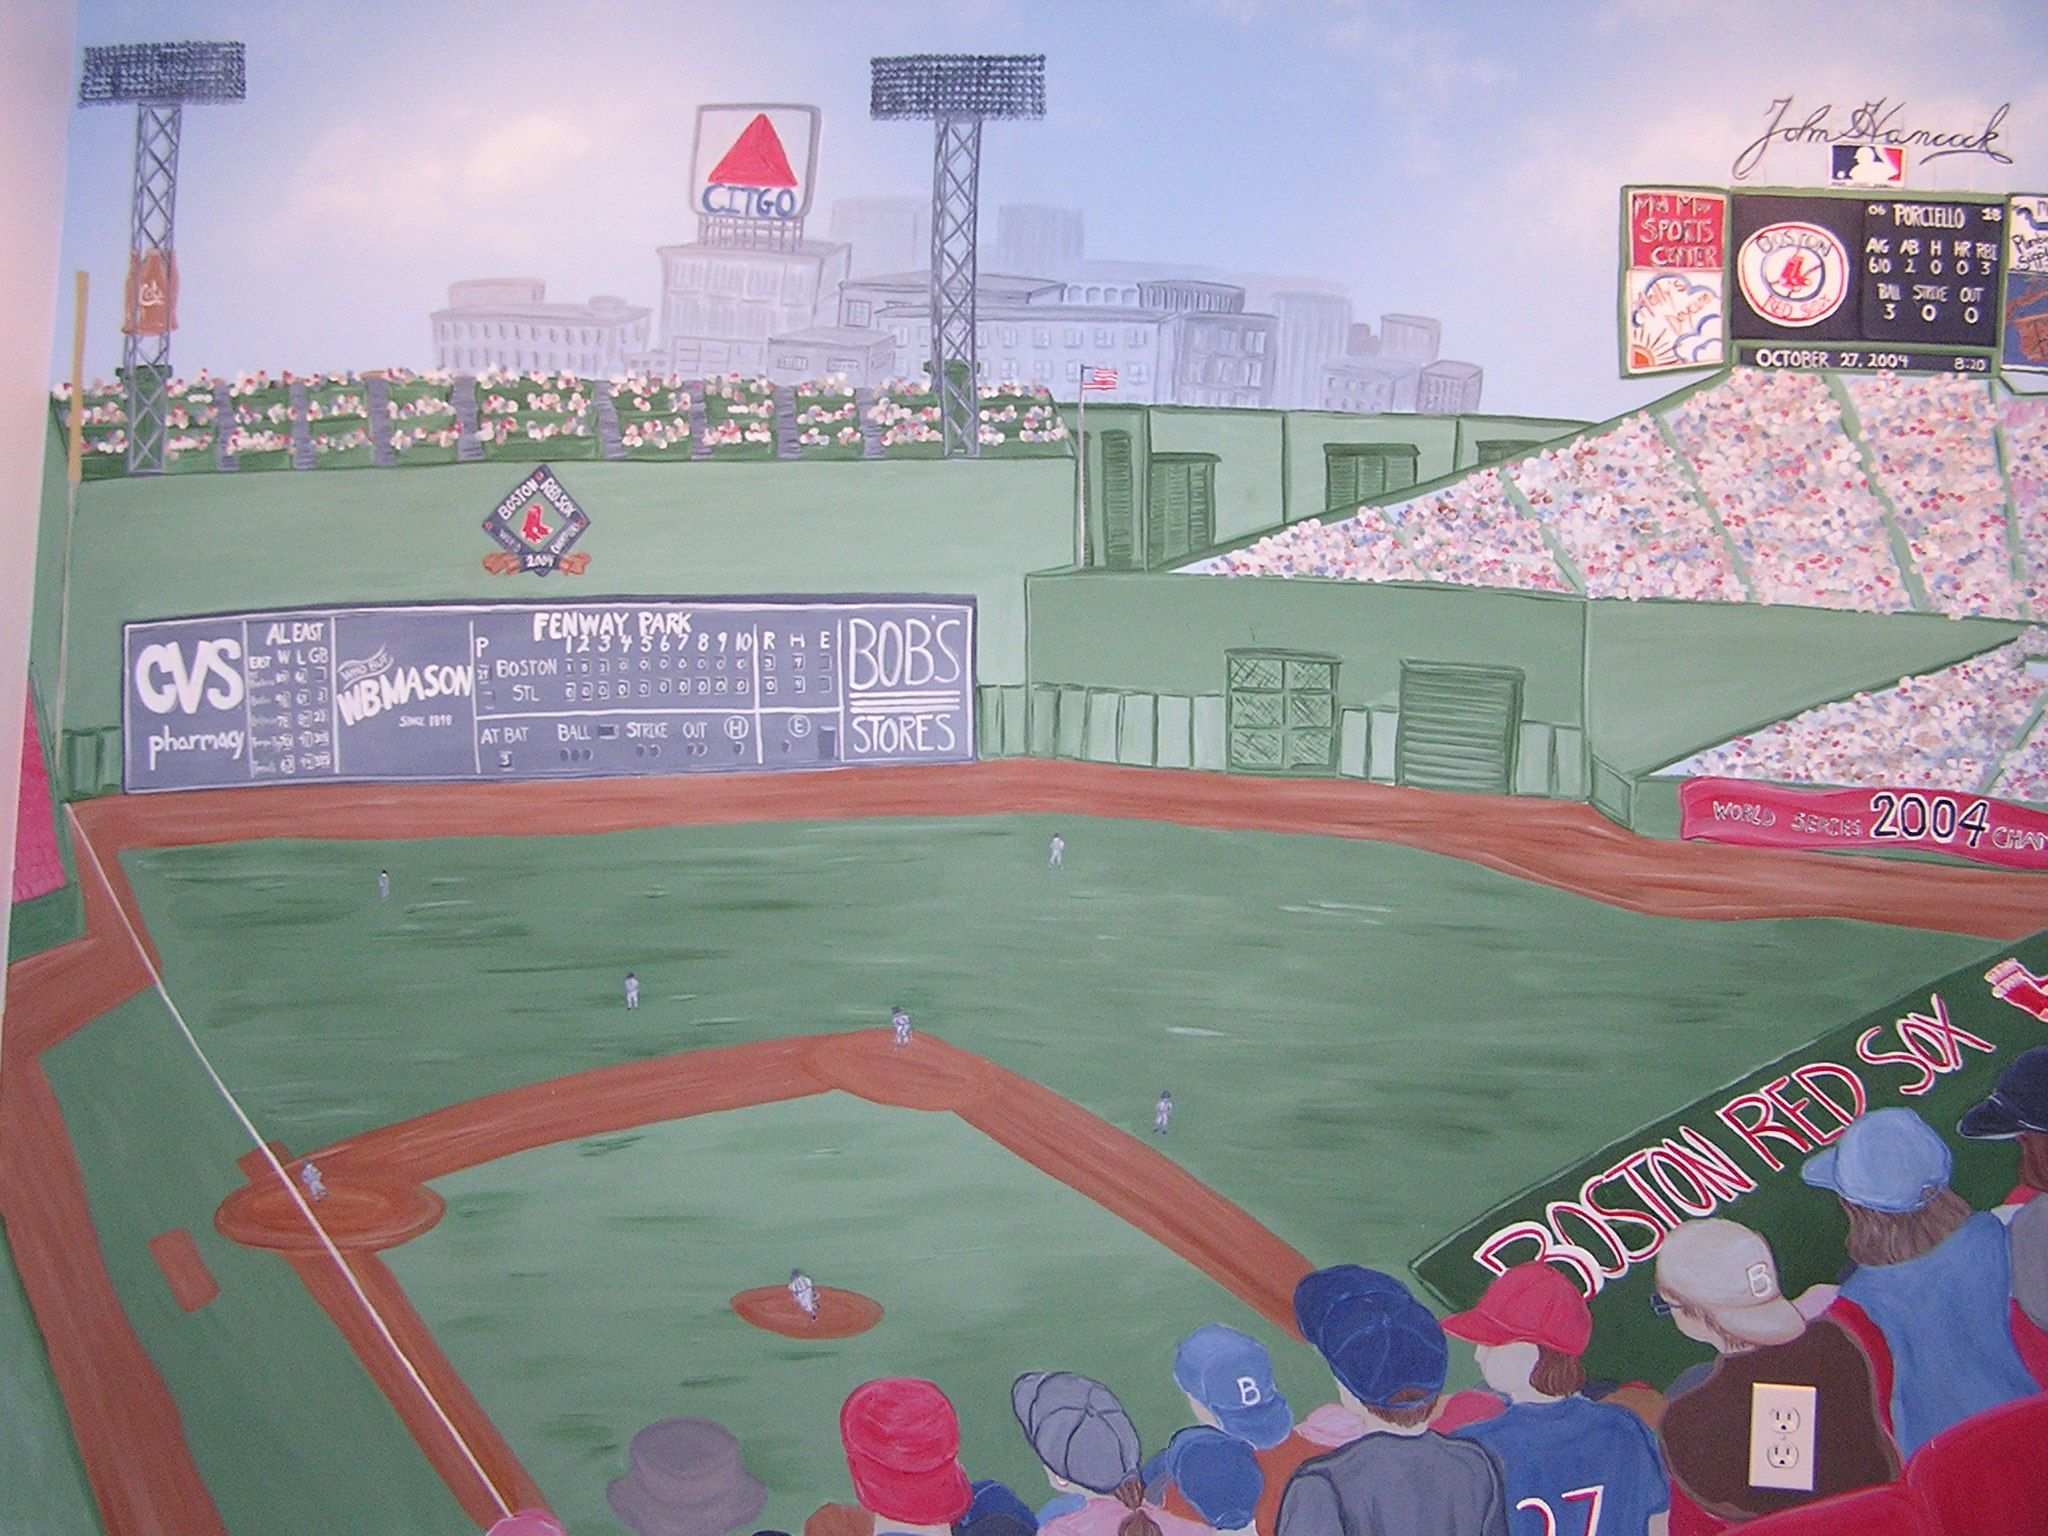 Boys Bedroom Fenway Park   Full 8x10 Wall Mural Of A Red Sox Game With View